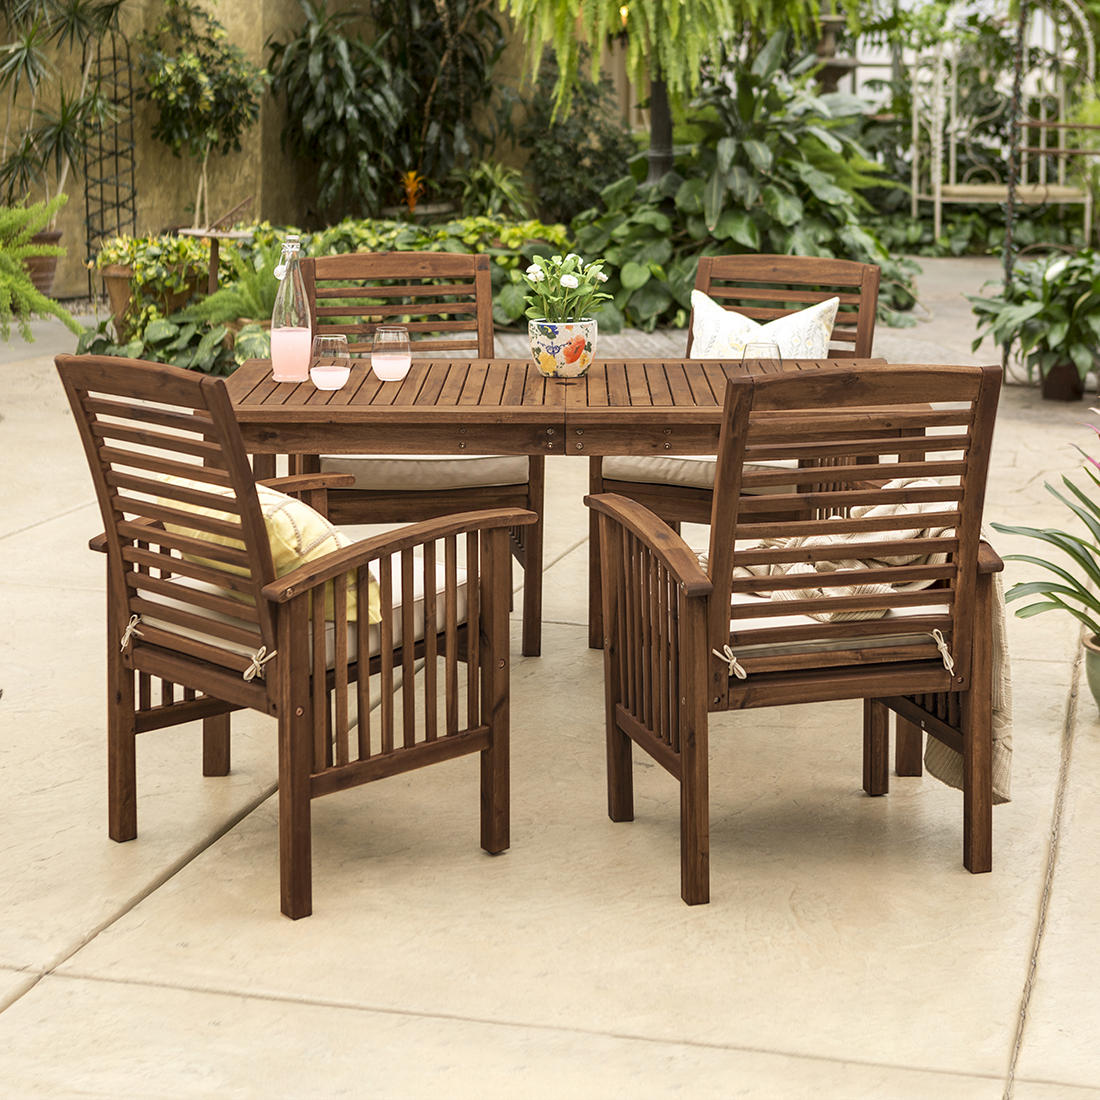 Tremendous W Trends 5 Pc Acacia Wood Outdoor Dining Set Dark Brown Machost Co Dining Chair Design Ideas Machostcouk